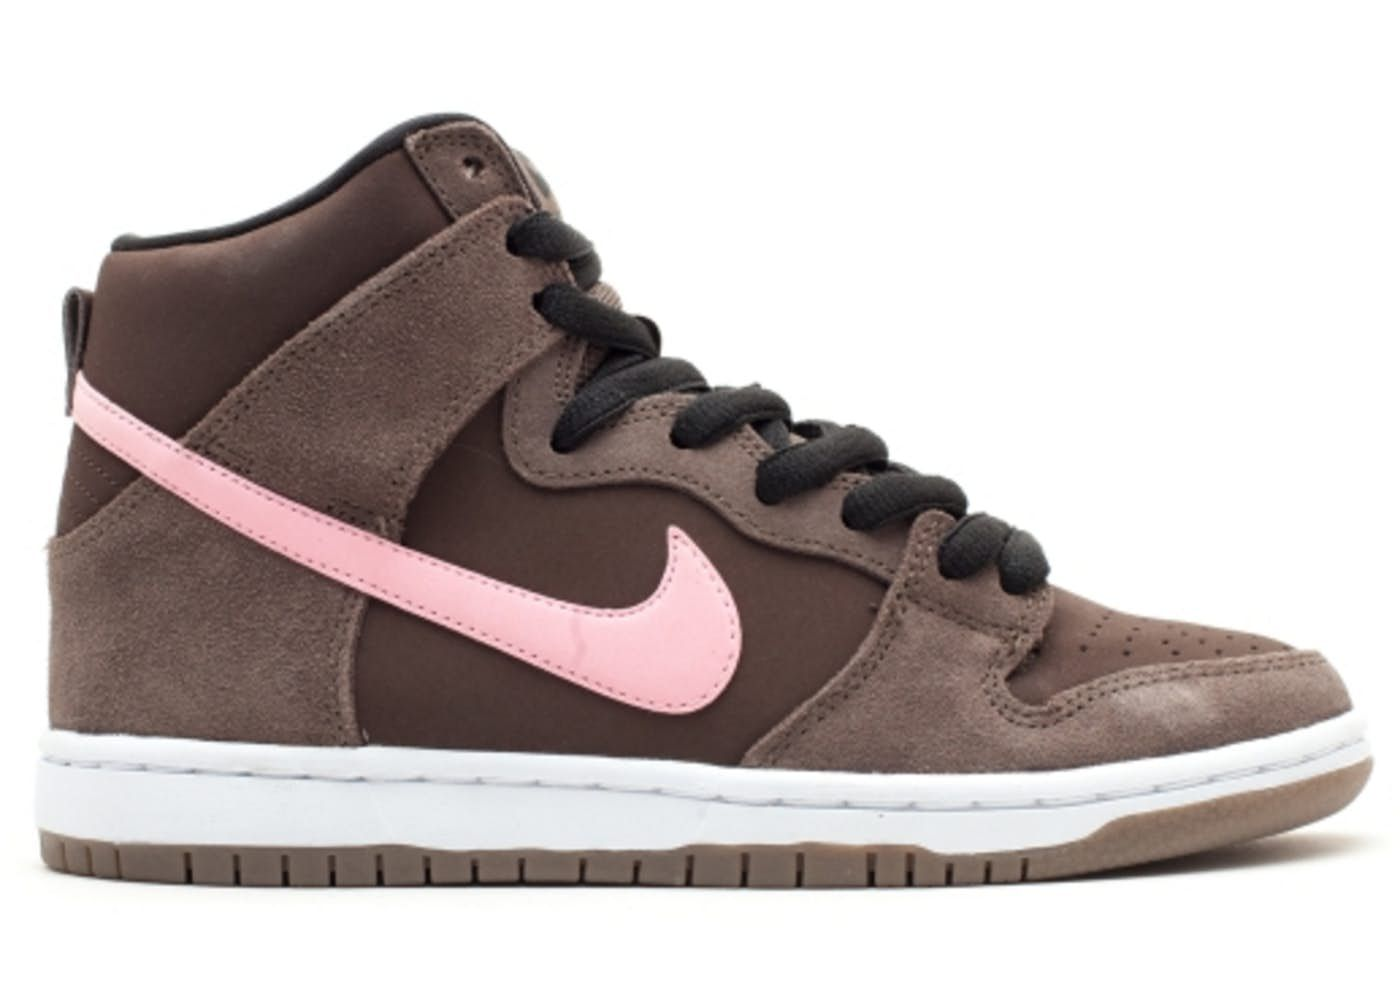 check out 90485 be2c5 Nike Dunk SB High Chocolate Pink | Footwear in 2019 | Nike ...